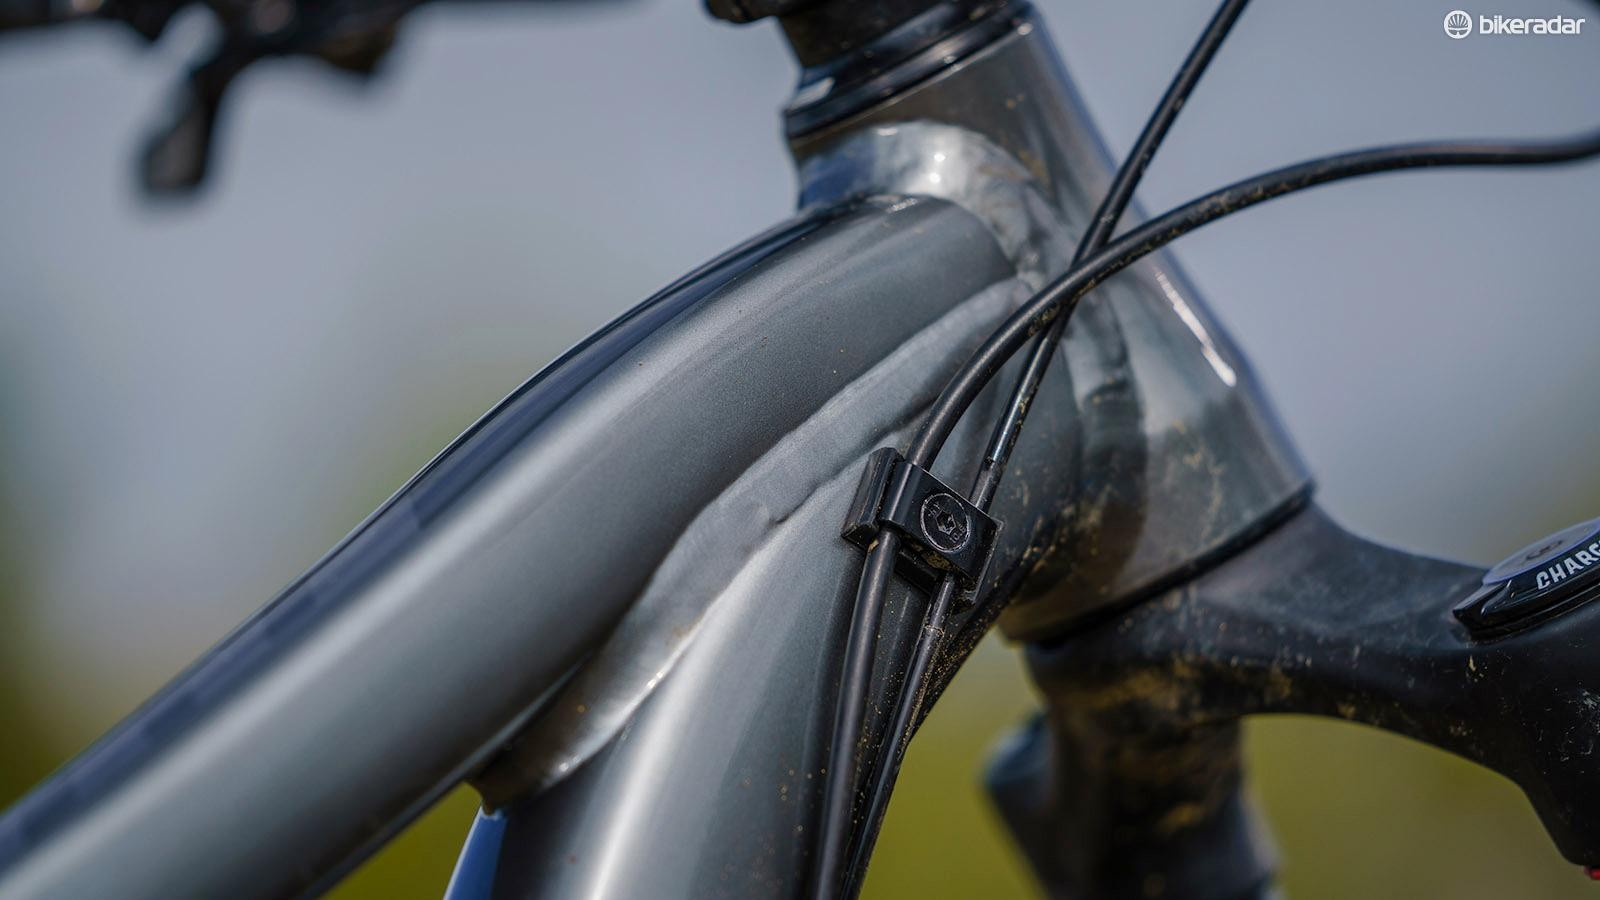 External cable routing makes life so much easier